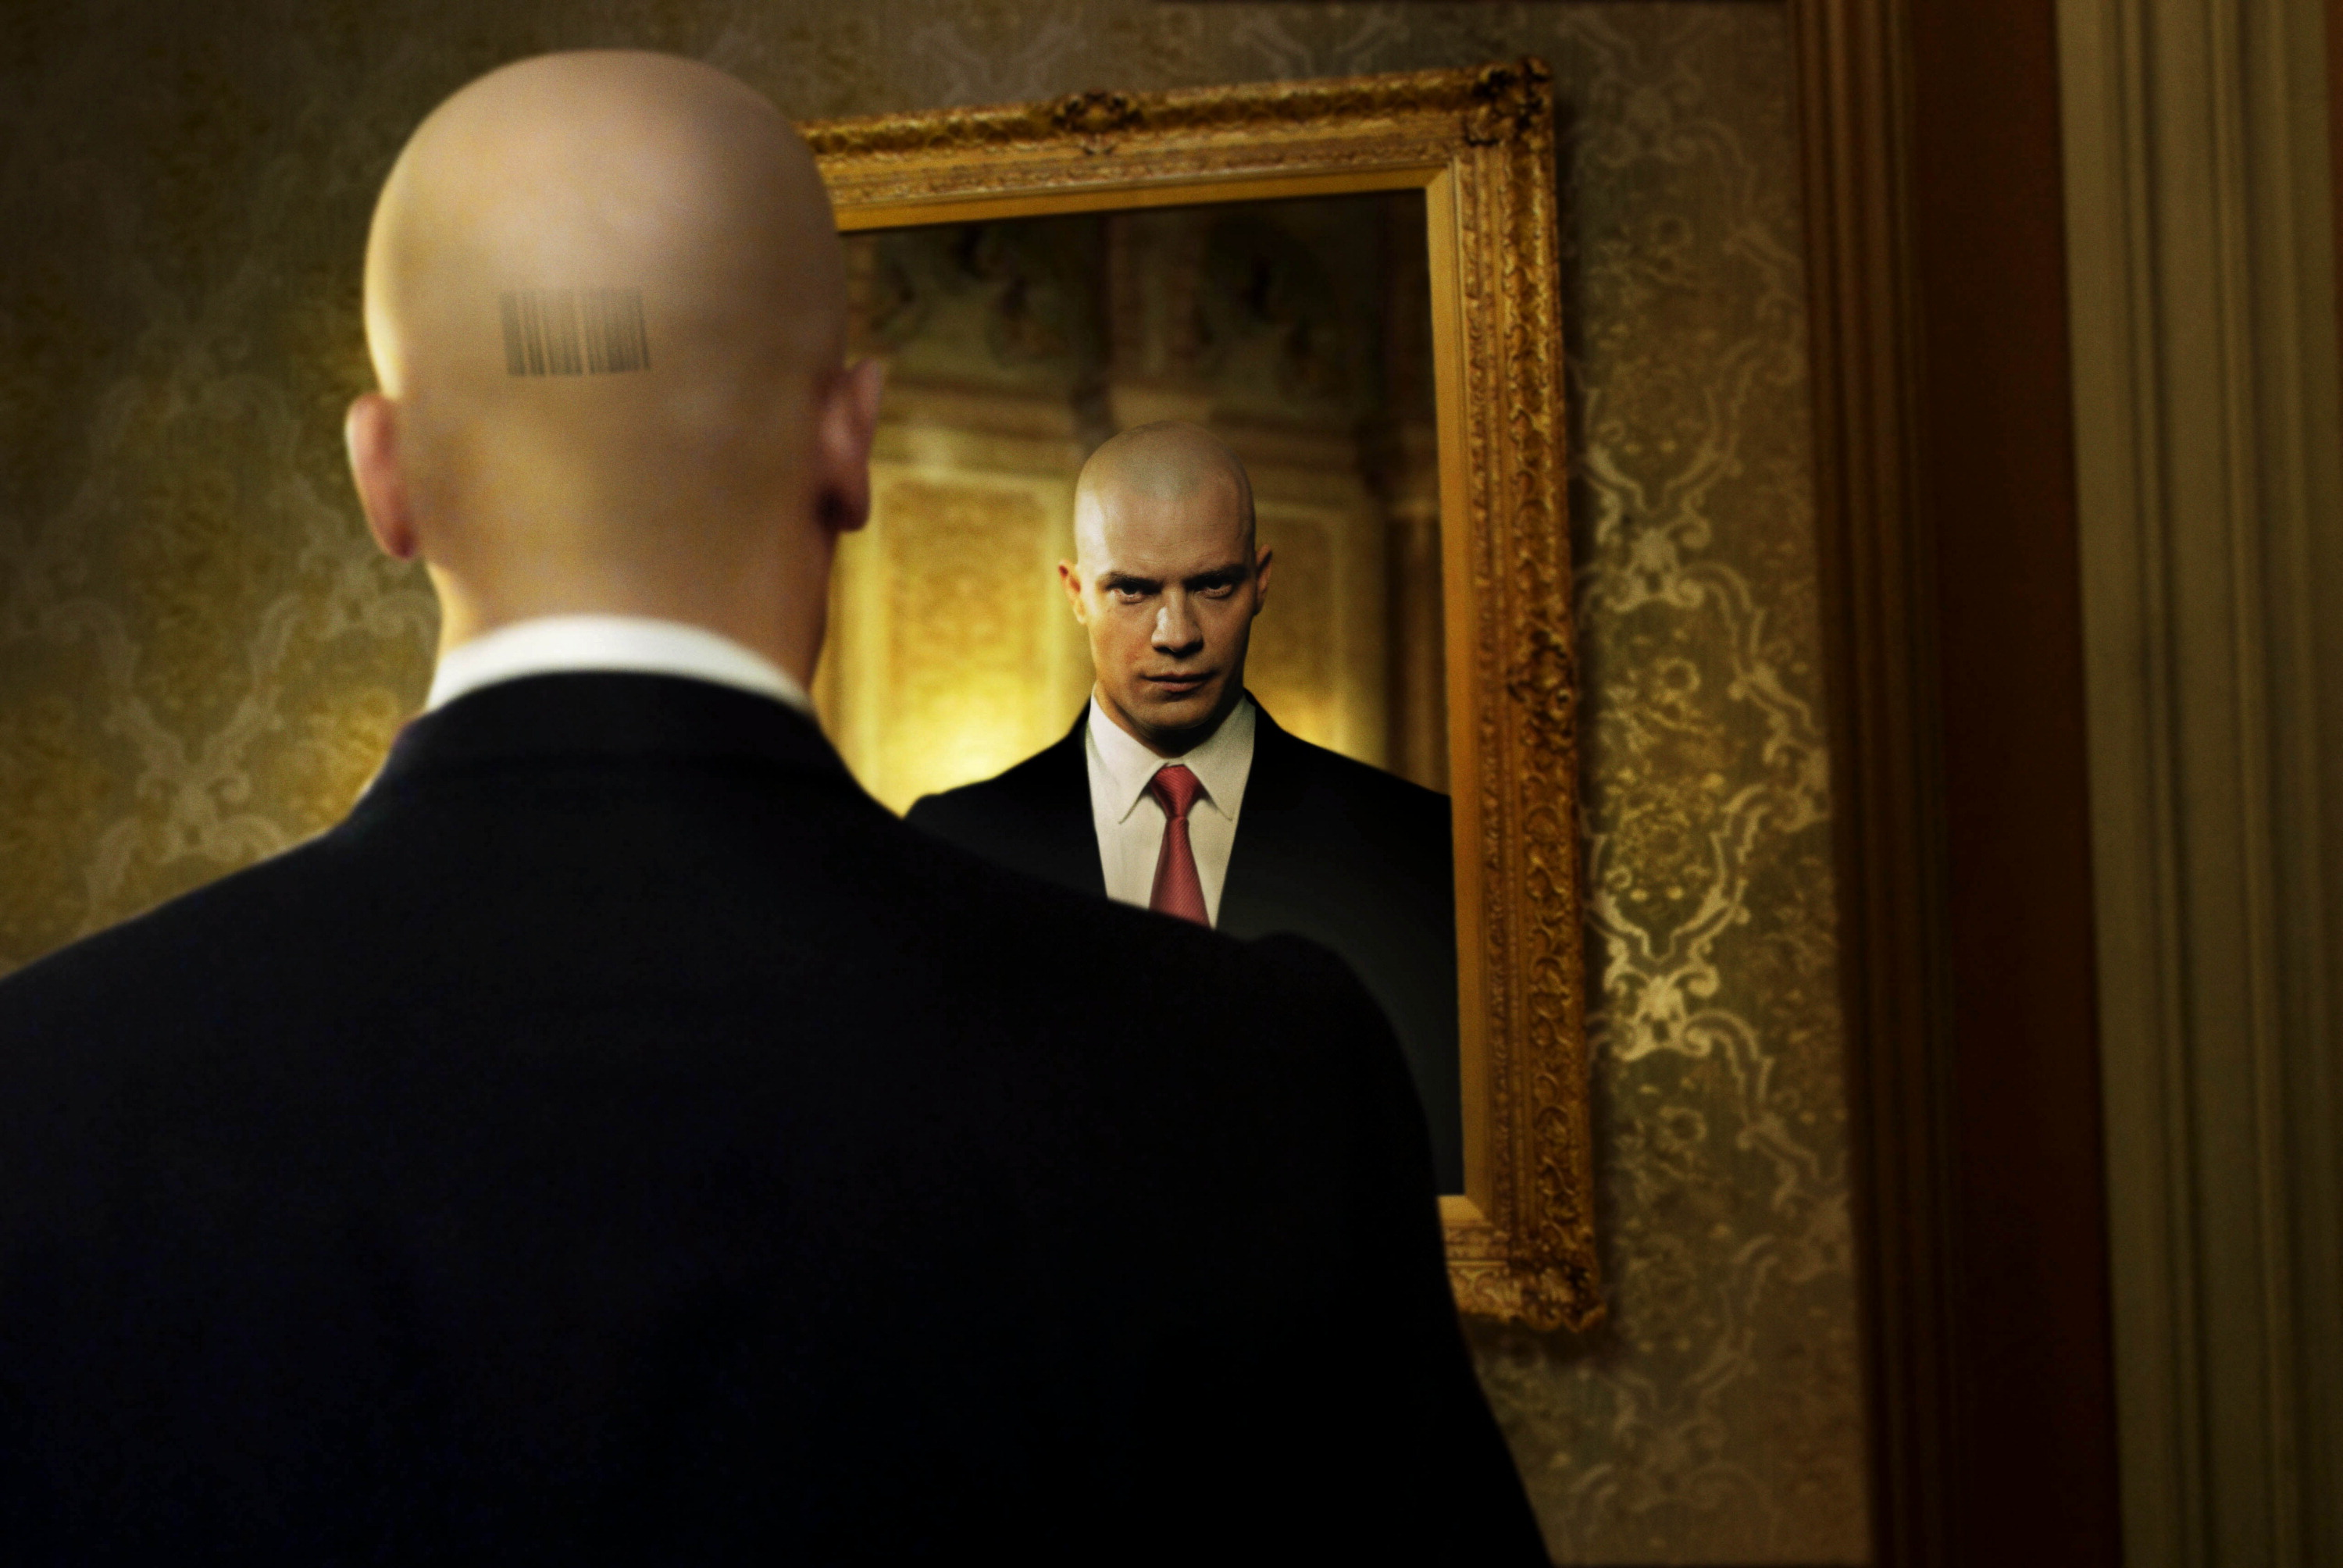 Timothy Olyphant as Agent 47 in Hitman (2007)